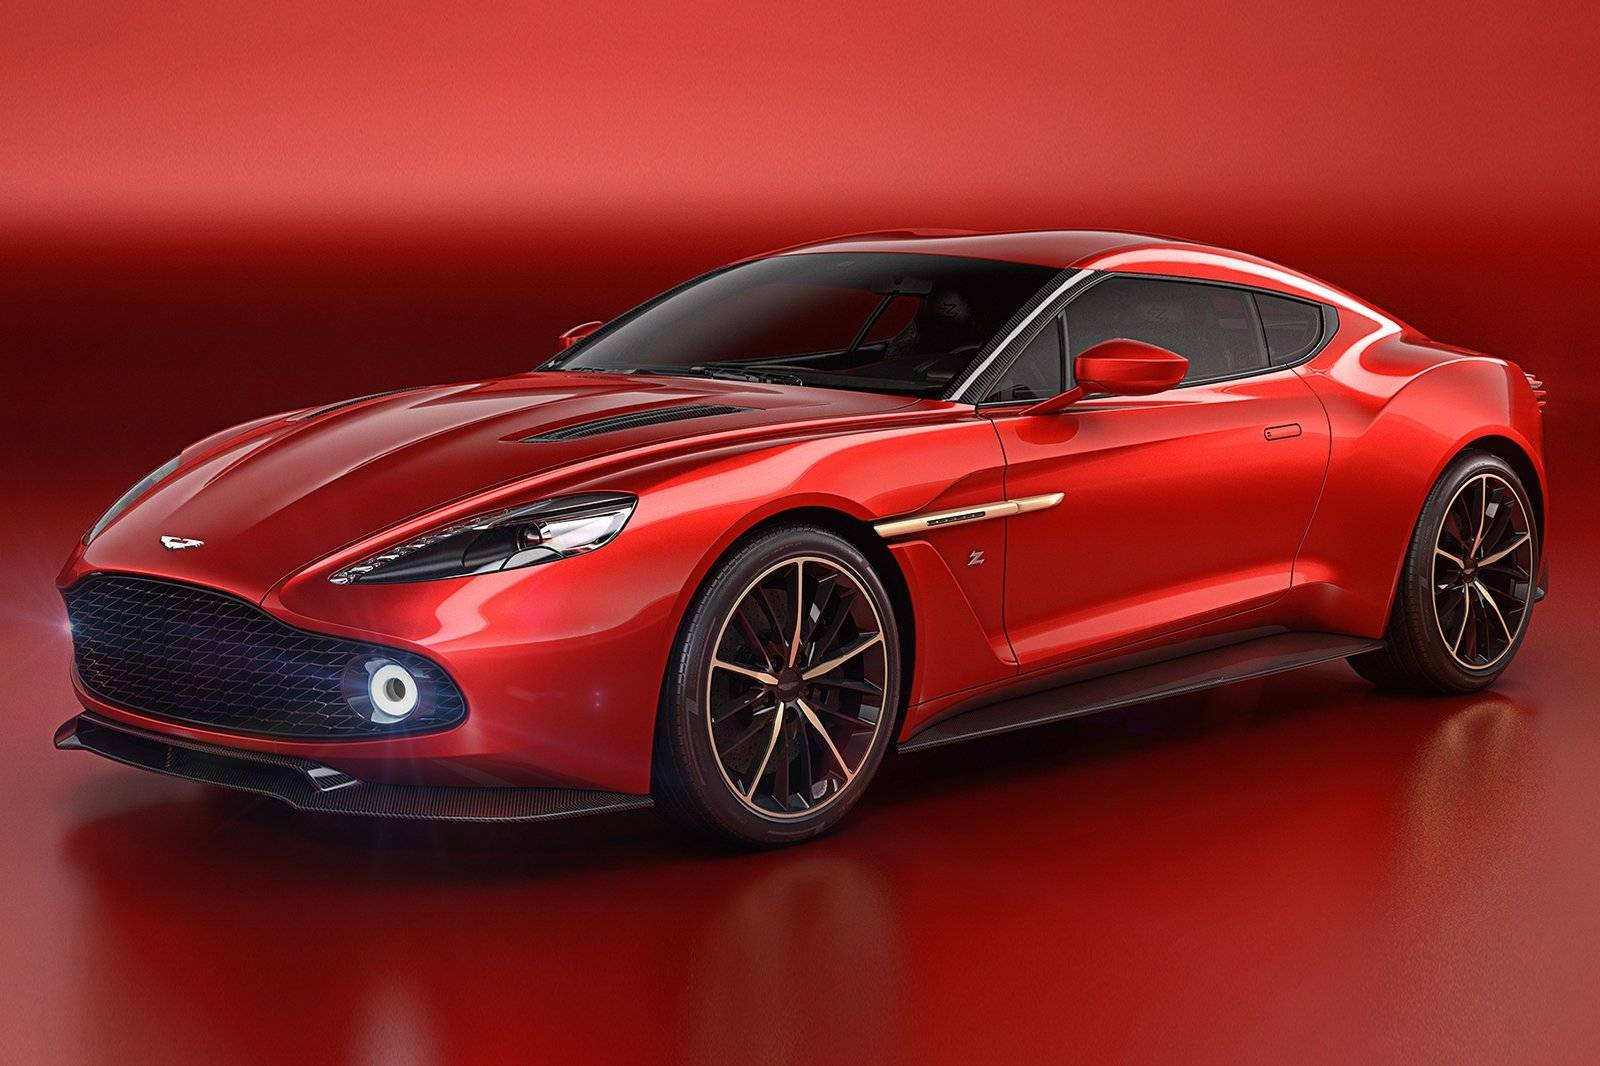 dit is de aston martin vanquish volgens zagato autonieuws. Black Bedroom Furniture Sets. Home Design Ideas